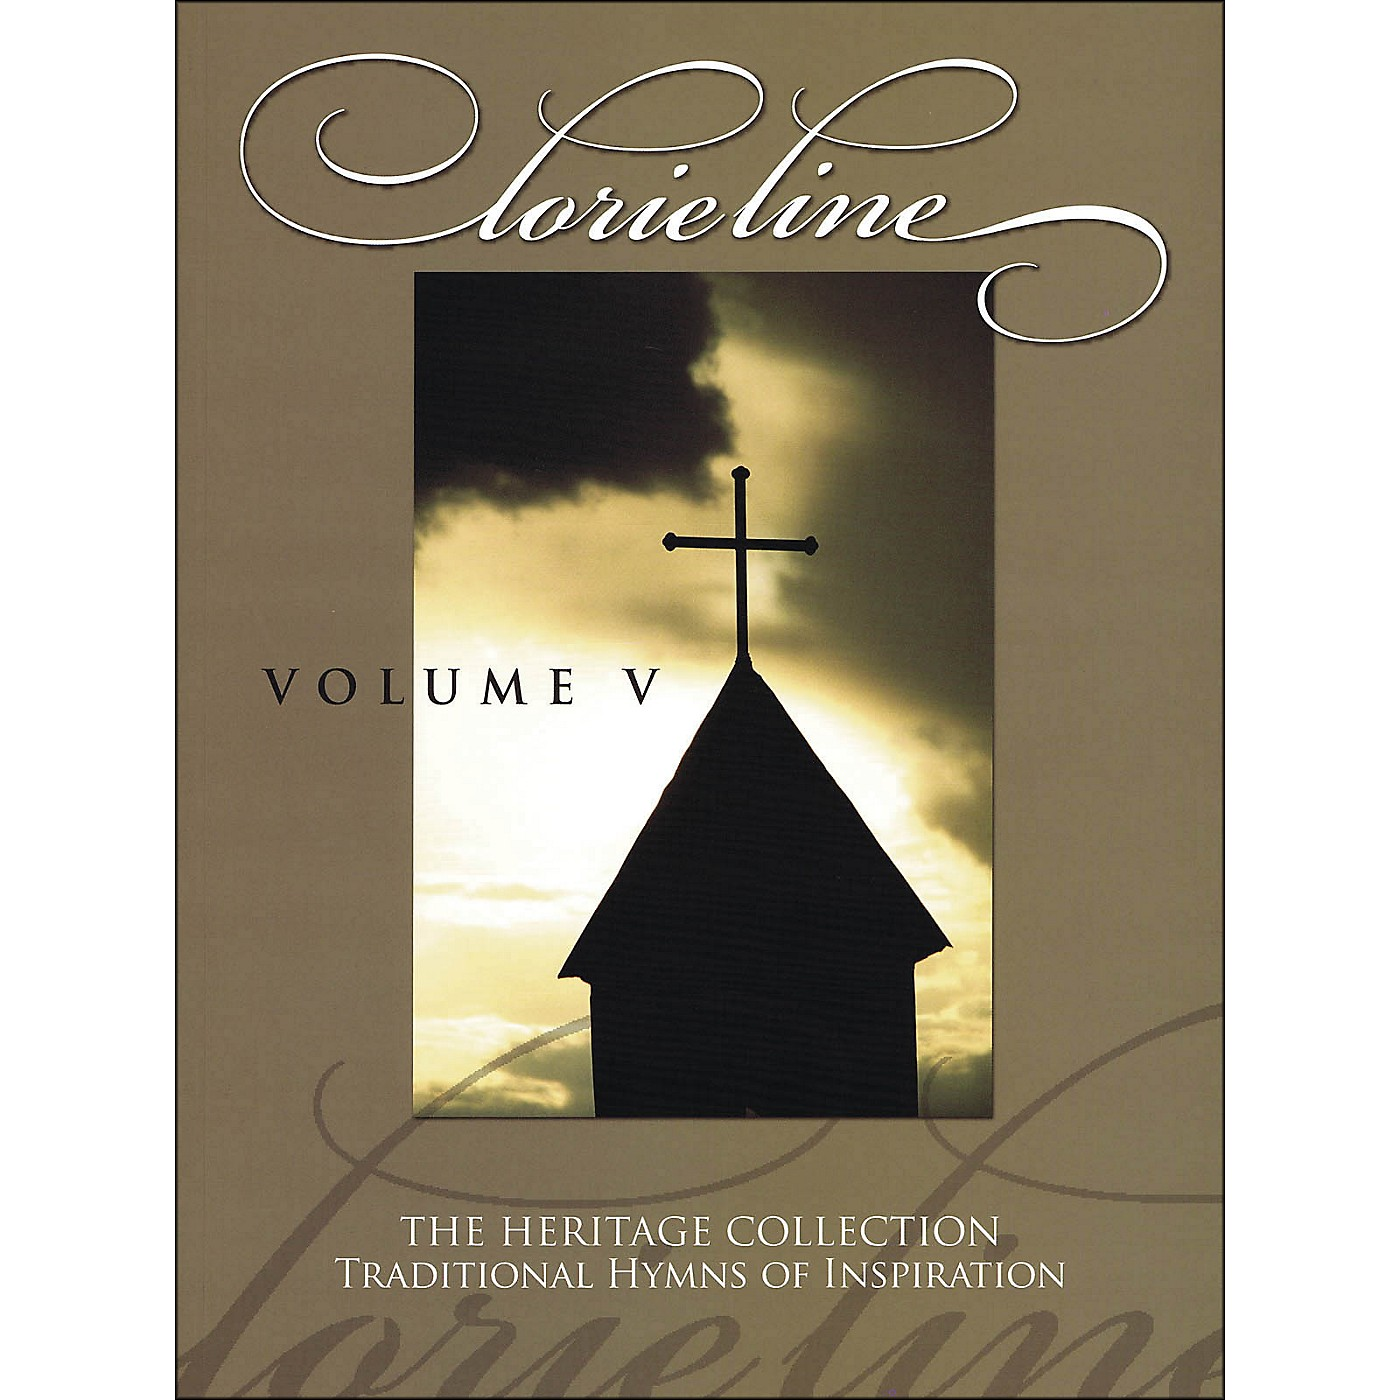 Hal Leonard Lorie Line - The Heritage Collection Volume V arranged for piano solo thumbnail